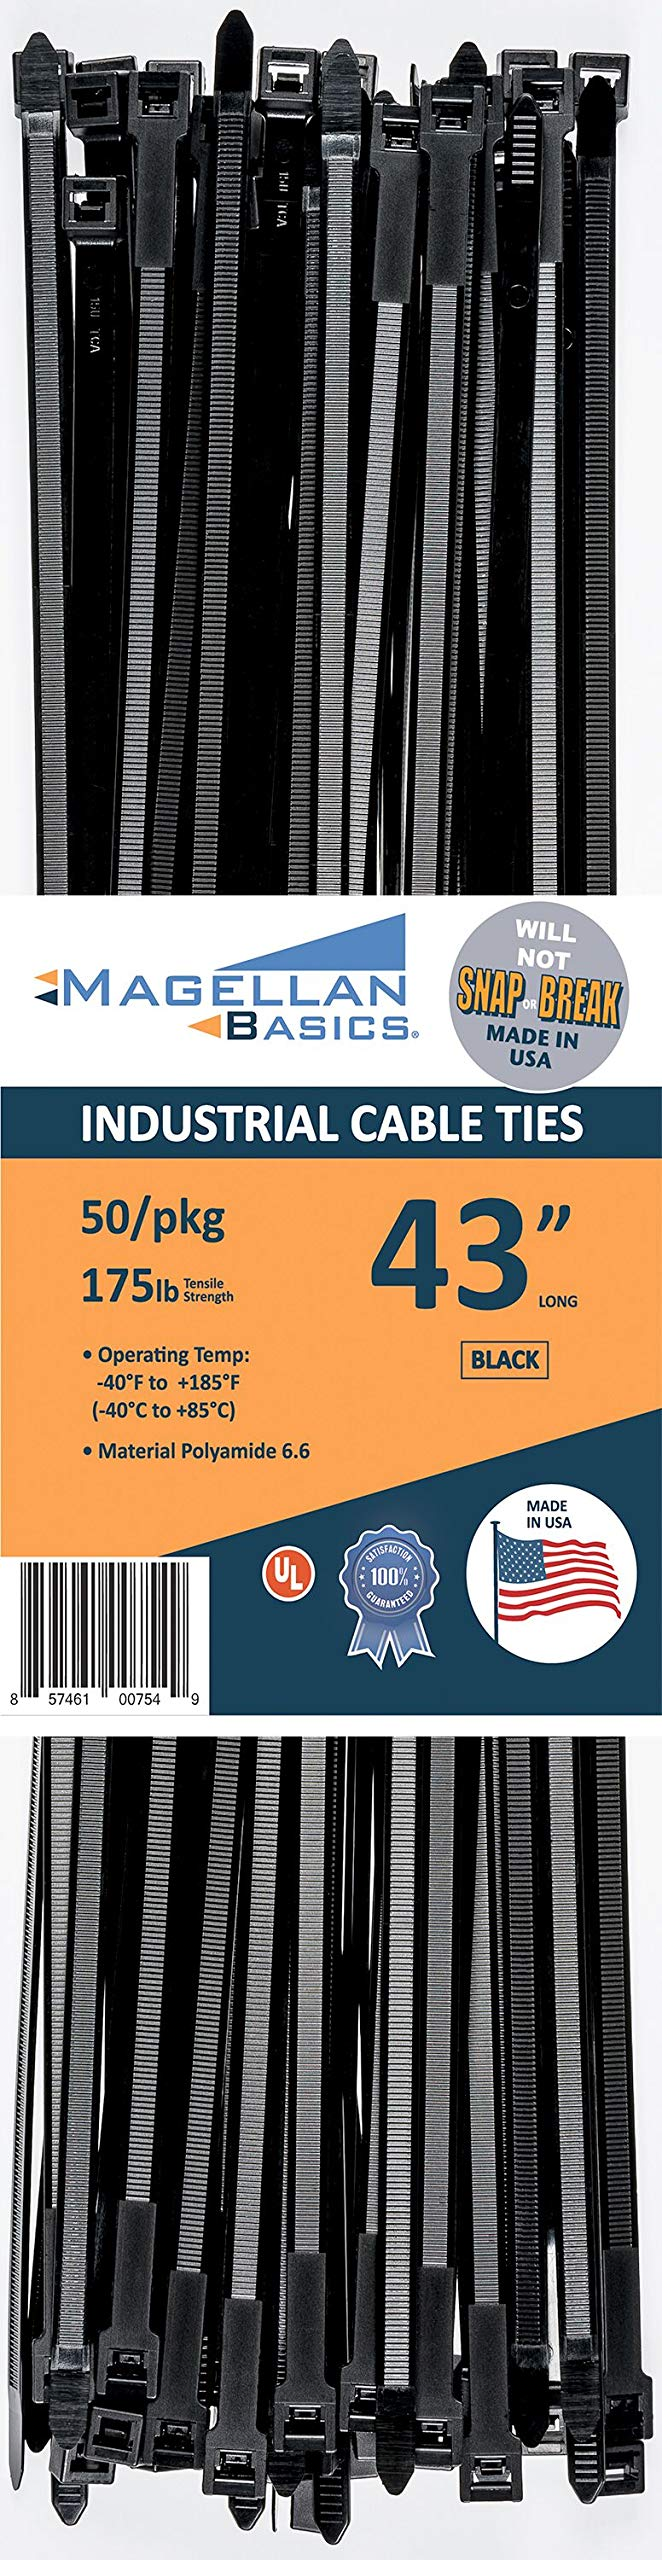 50 Pack Cable Zip Ties Heavy Duty Made in The USA 43 inch, Black